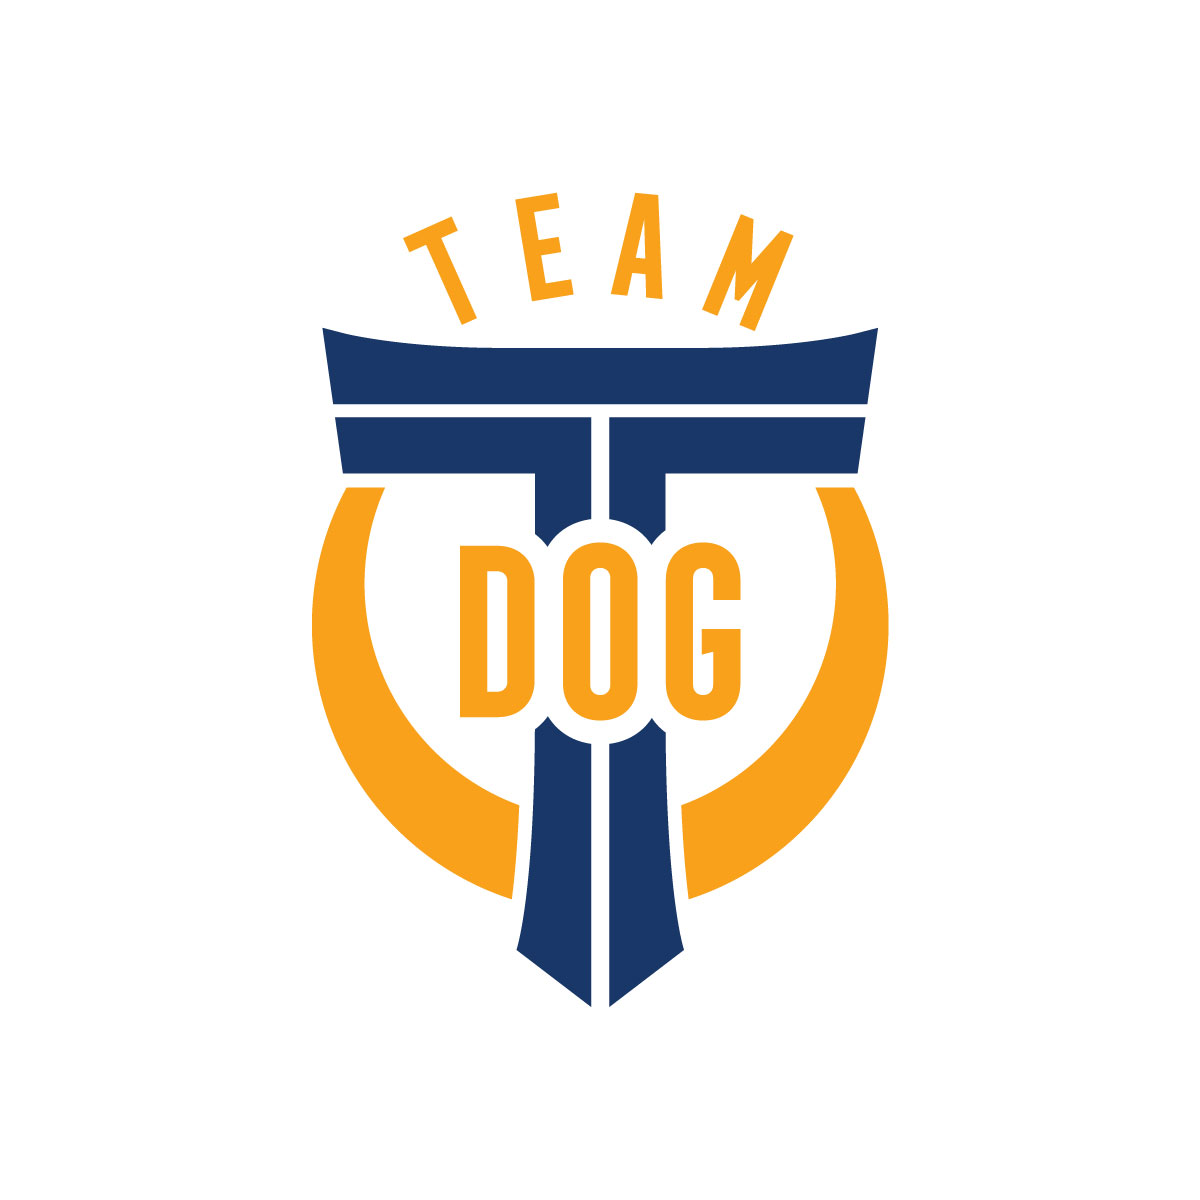 Team T-Dog, Tsuneari Yahiro, Logo